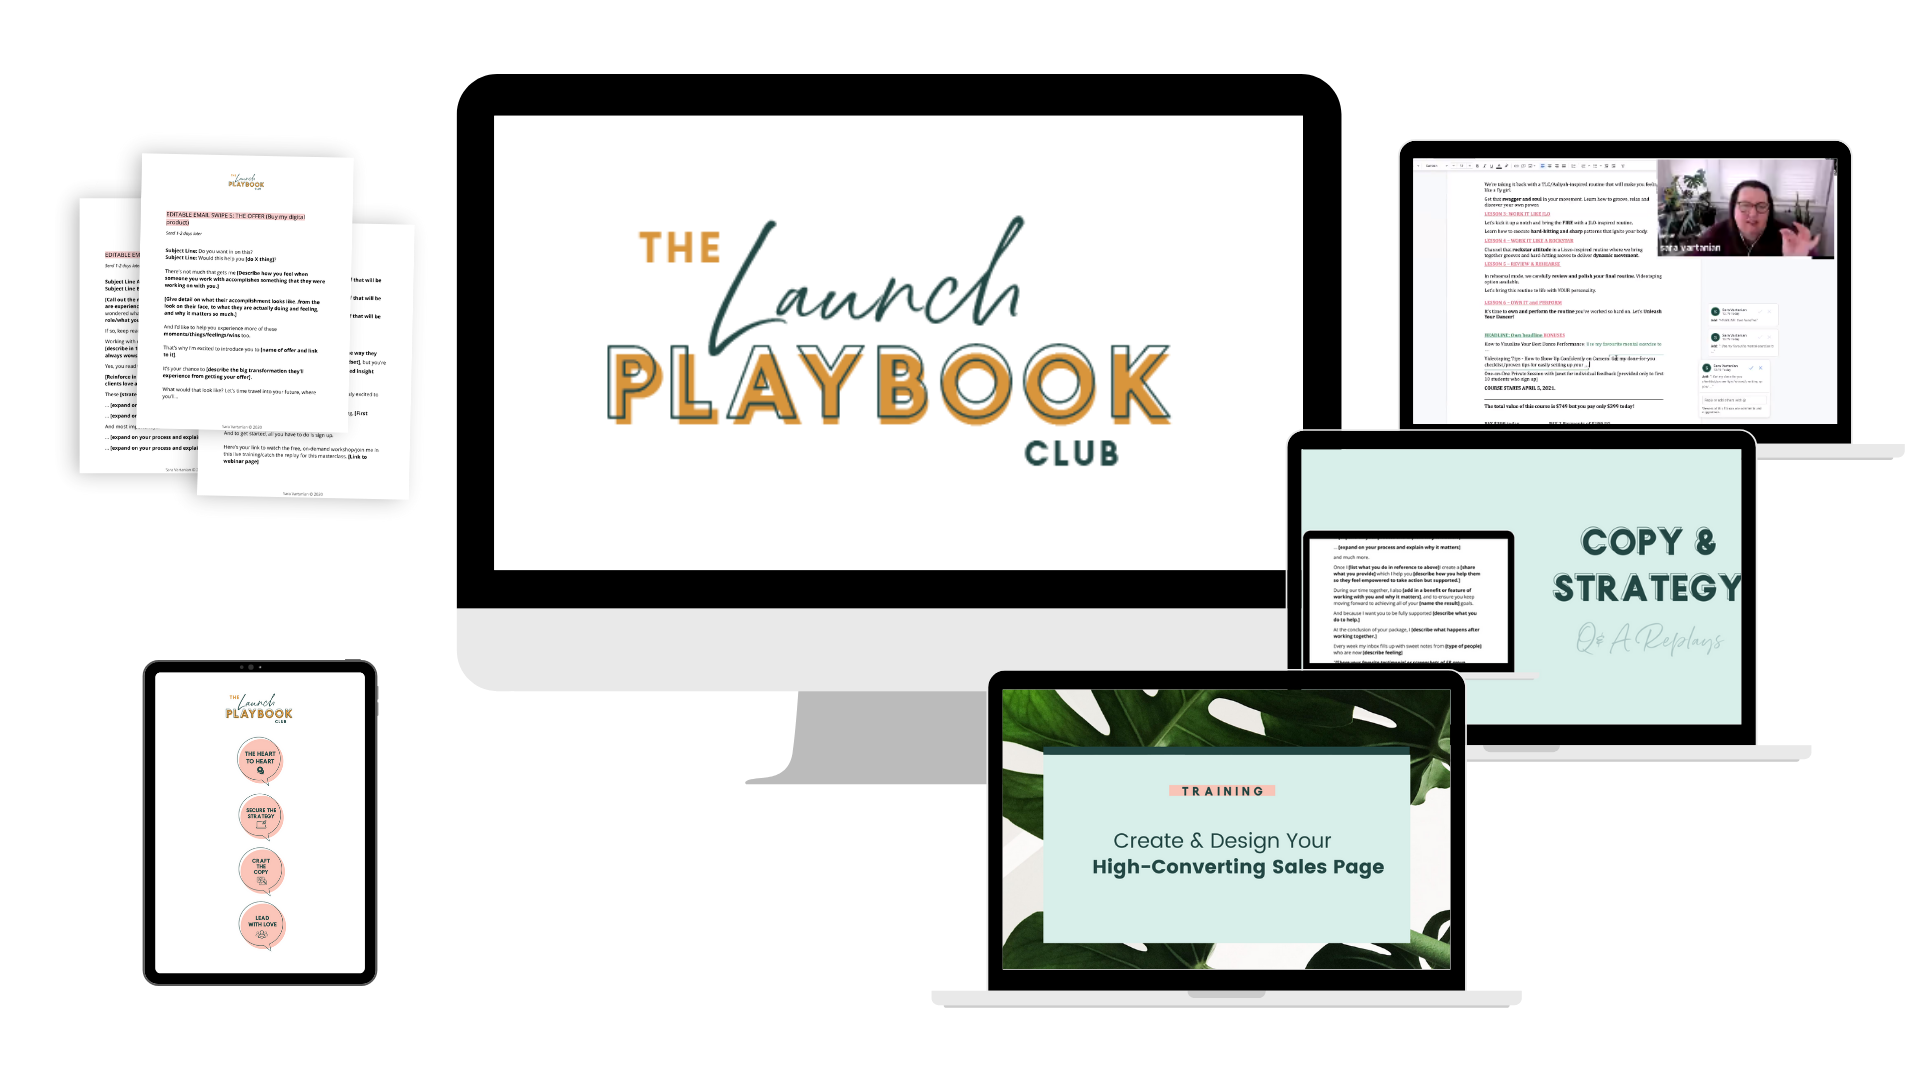 The Launch Playbook Club